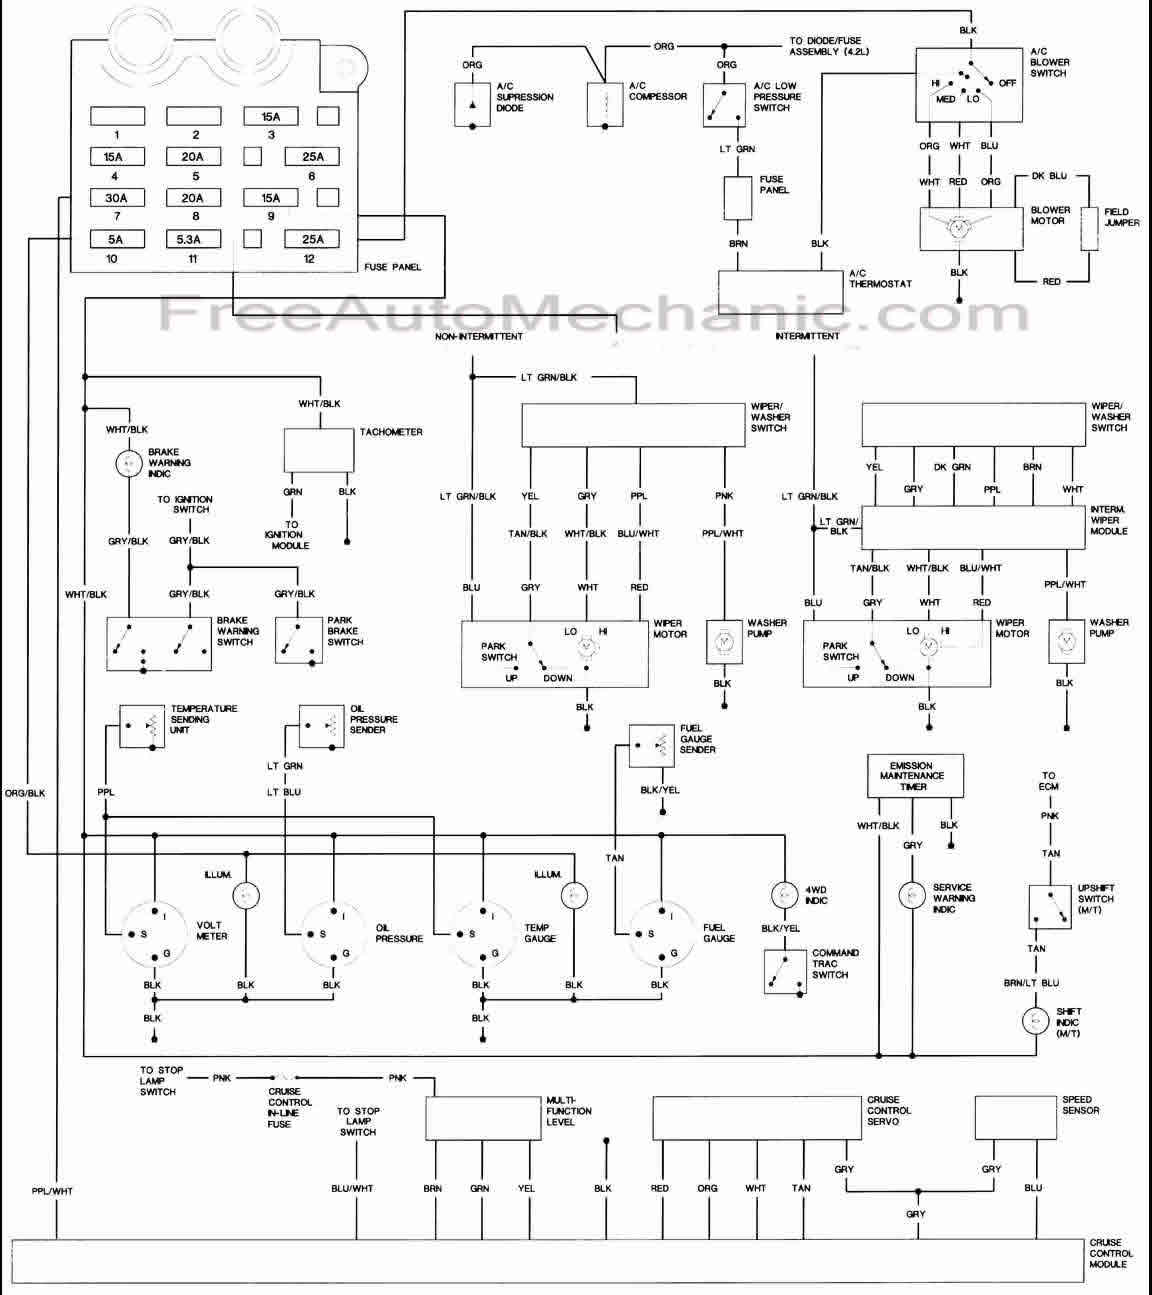 Download Vector Diagram In Physics further 2003 Ford Taurus Radio Wiring Diagram moreover Cigarette Lighter Fuse Keeps Blowing together with 1966 Ford Galaxie 500 Wiring Harness further 1999 Ford Taurus Fuse Box Location. on free mercury wiring diagrams